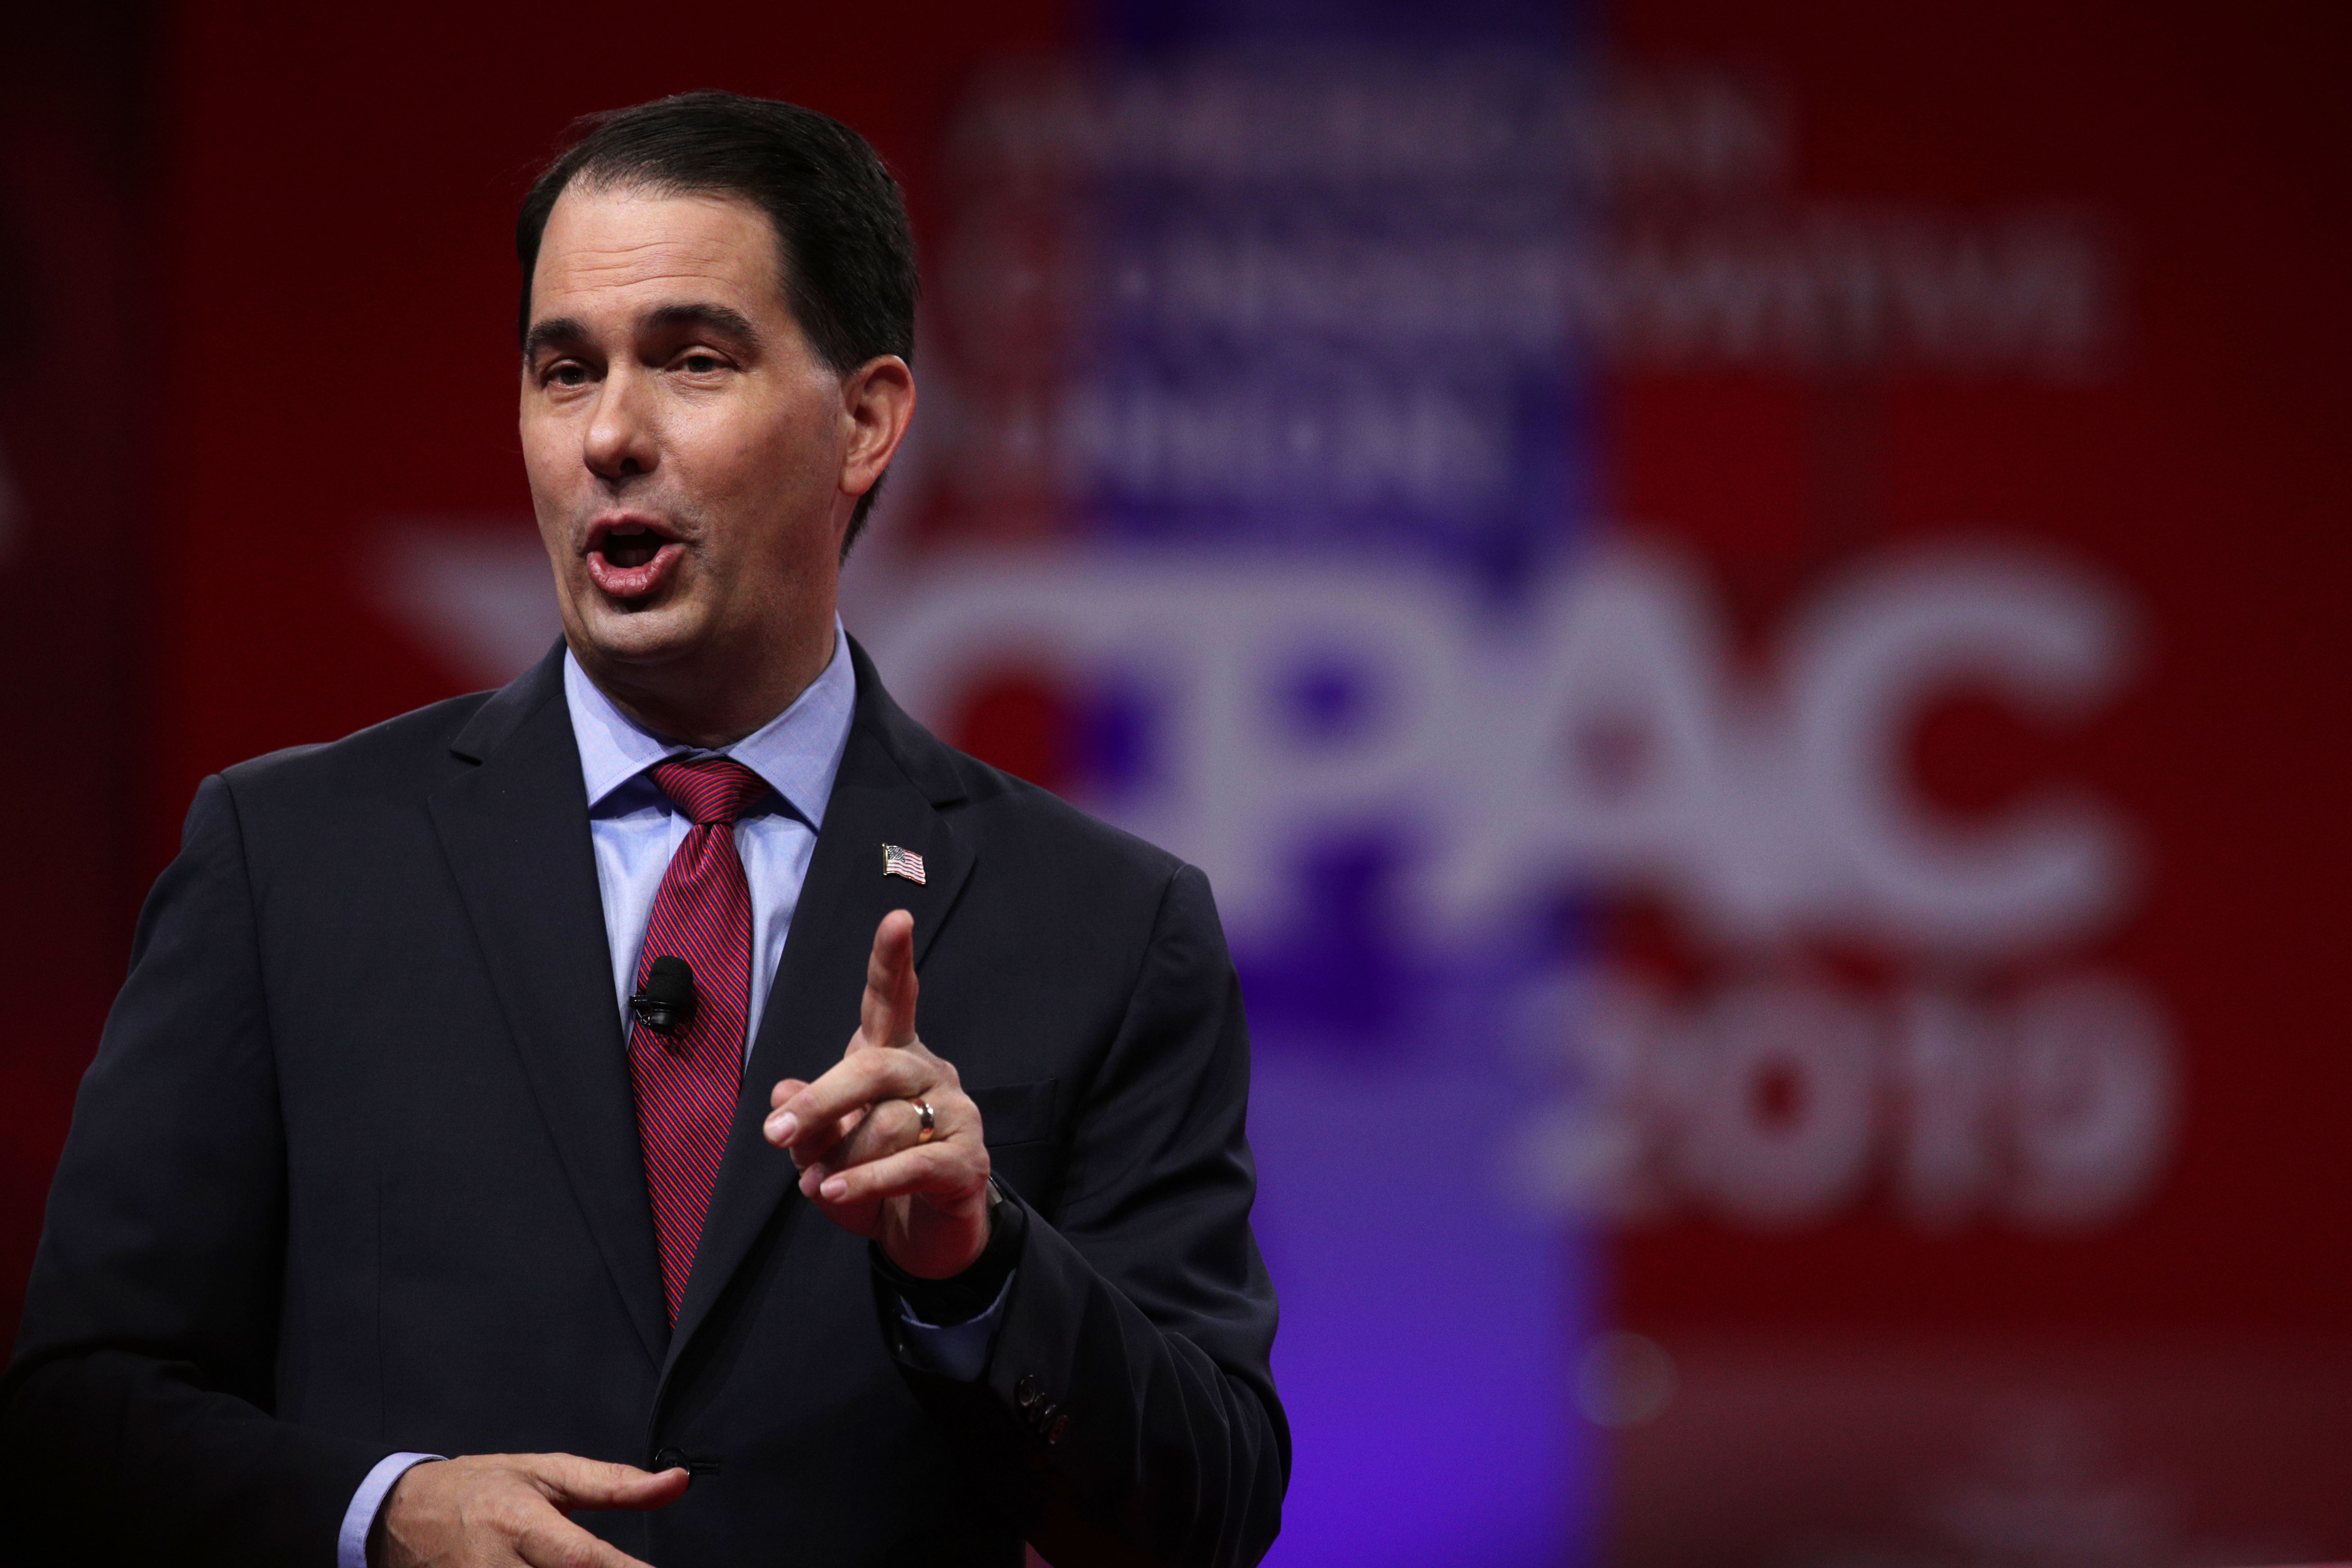 Former Wisconsin governor Scott Walker says 25-year-old son may run for Congress - The Washington Post